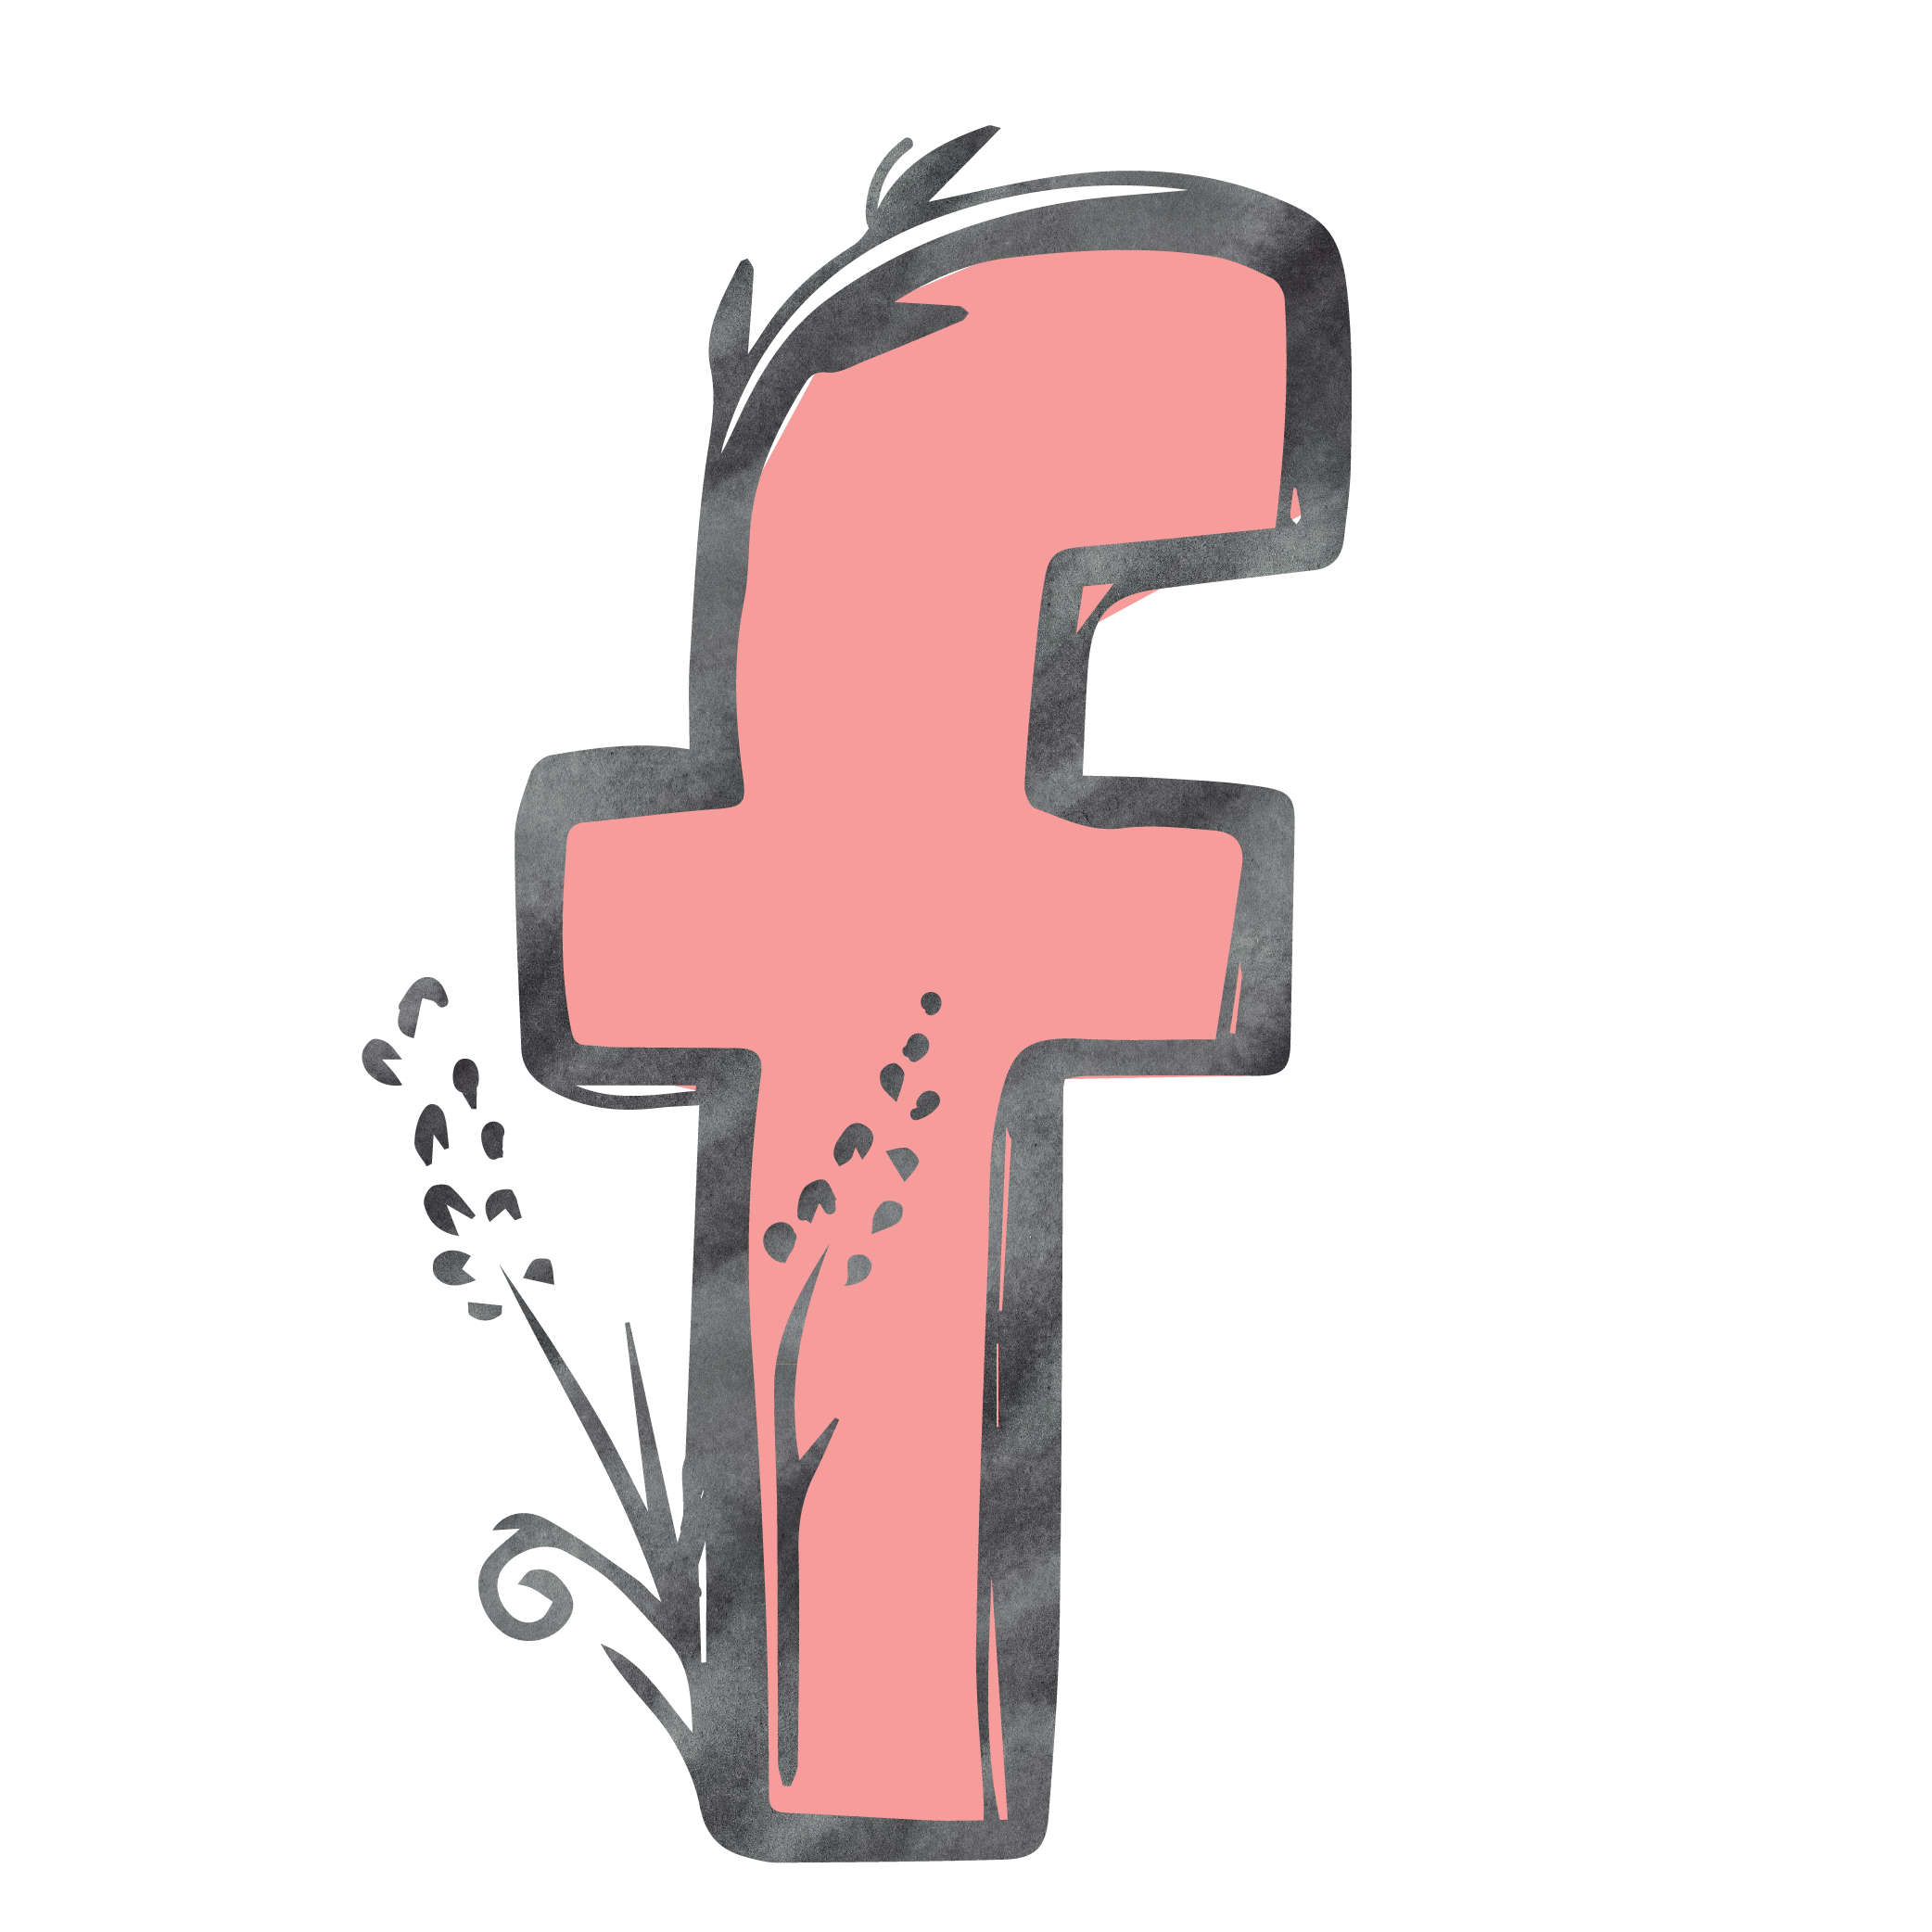 Markers clipart pink highlighter. Review facebook